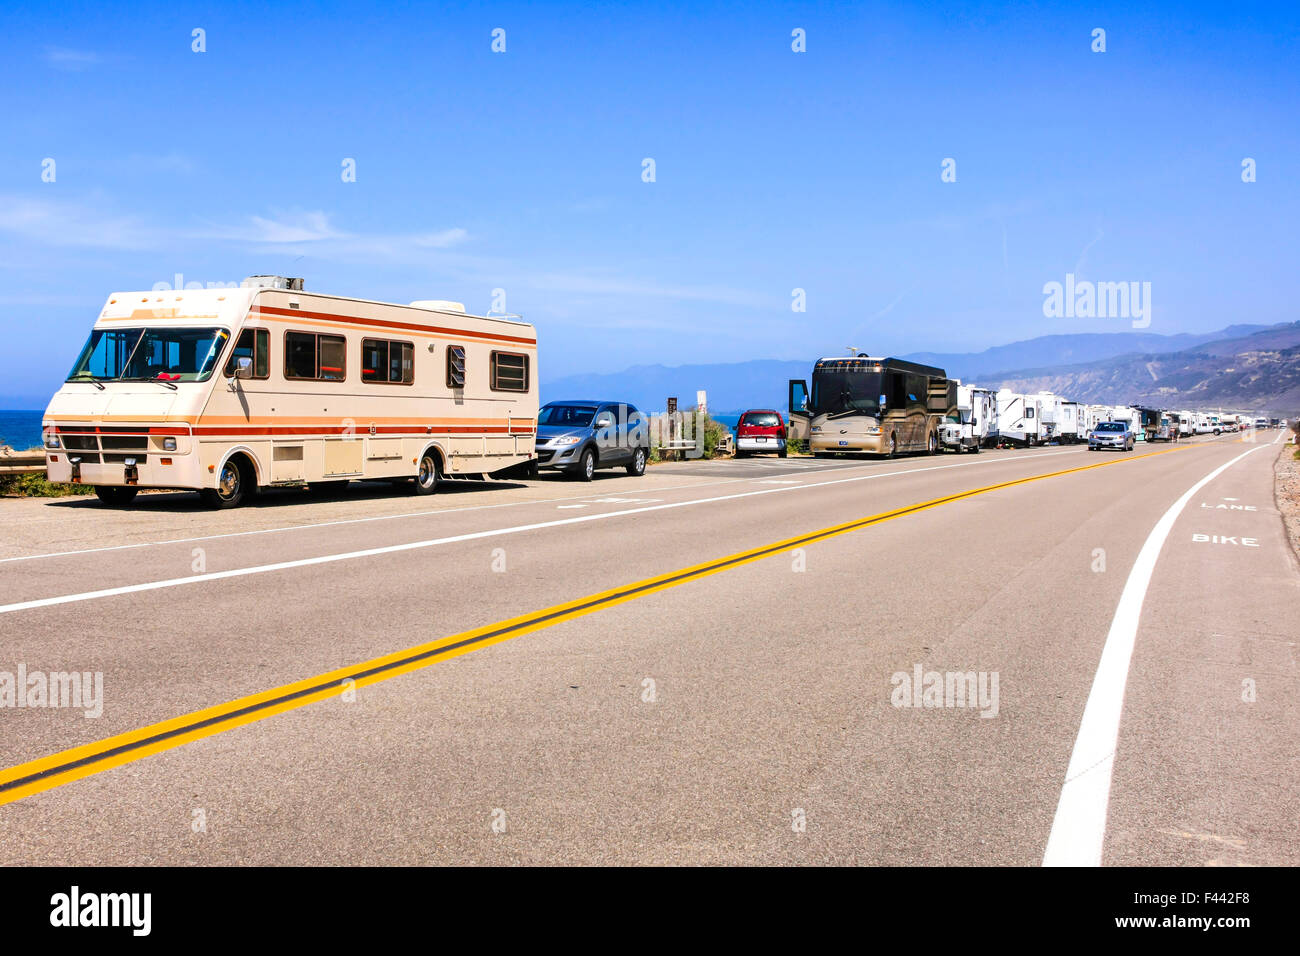 Motorhomes and travel trailers parked up on PCH - Pacific Coast Highway Rte 1 just outside Ventura in California - Stock Image